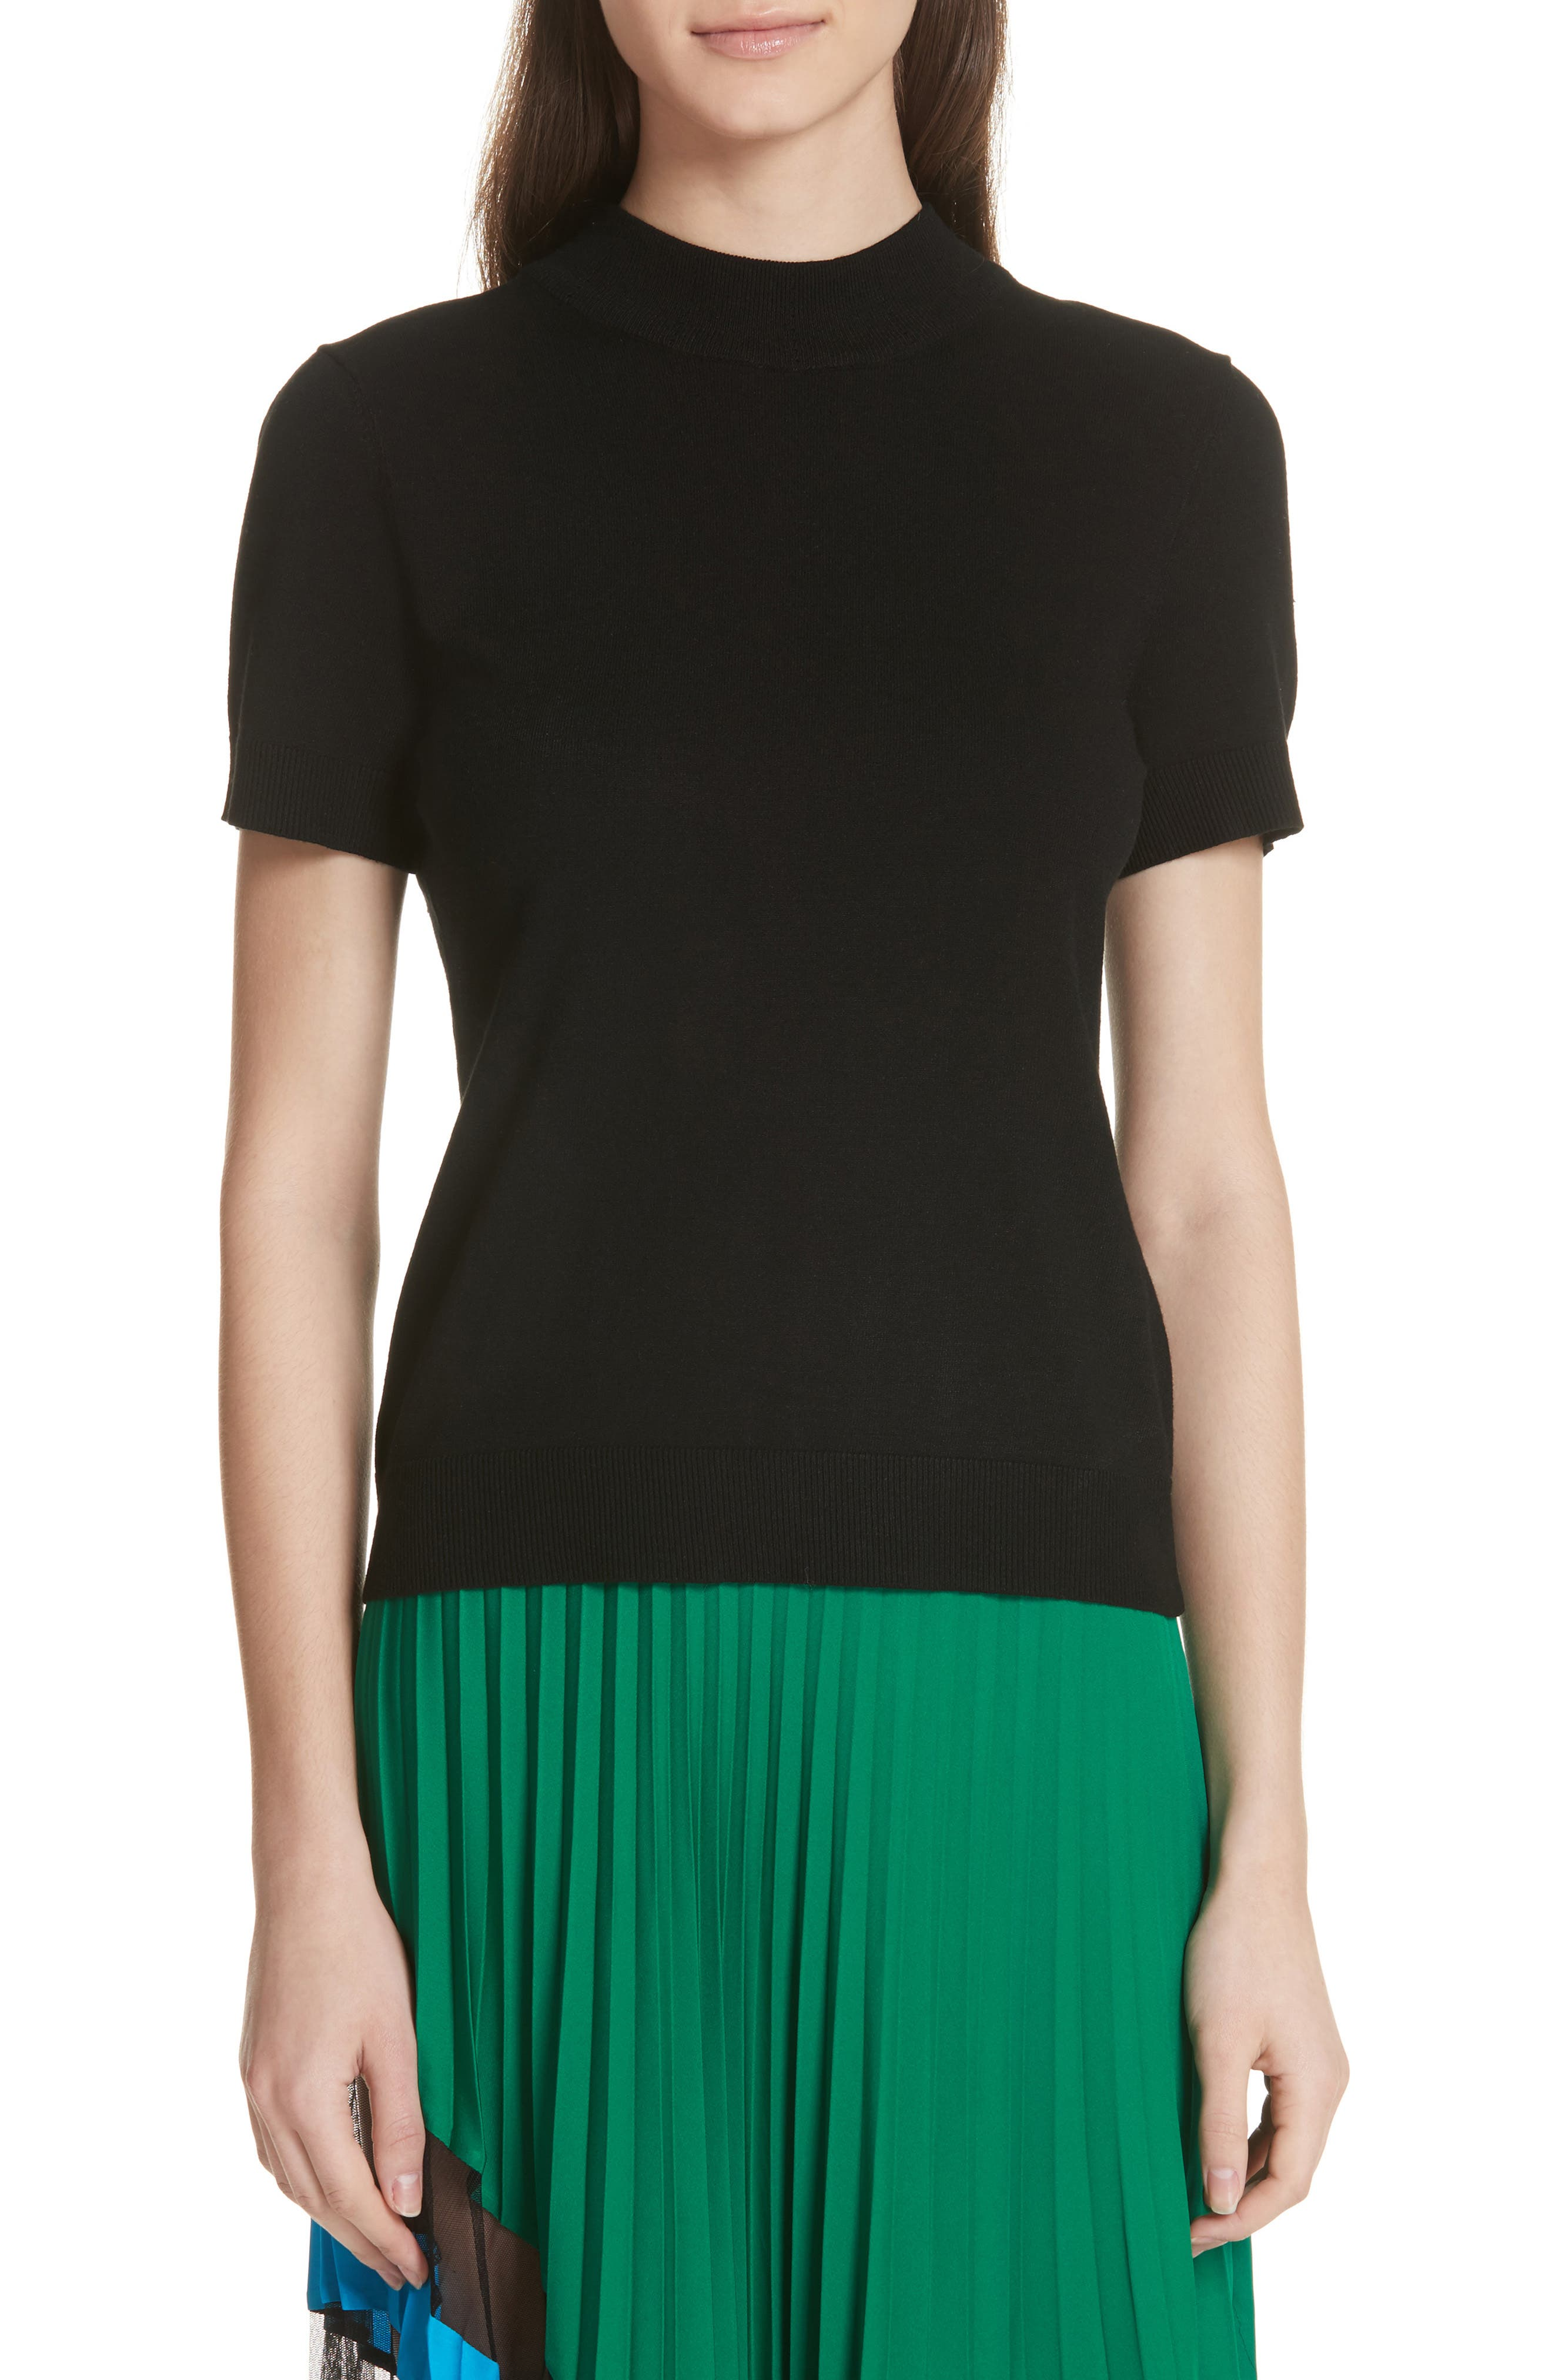 MILLY,                             Mock Neck Tee,                             Main thumbnail 1, color,                             001